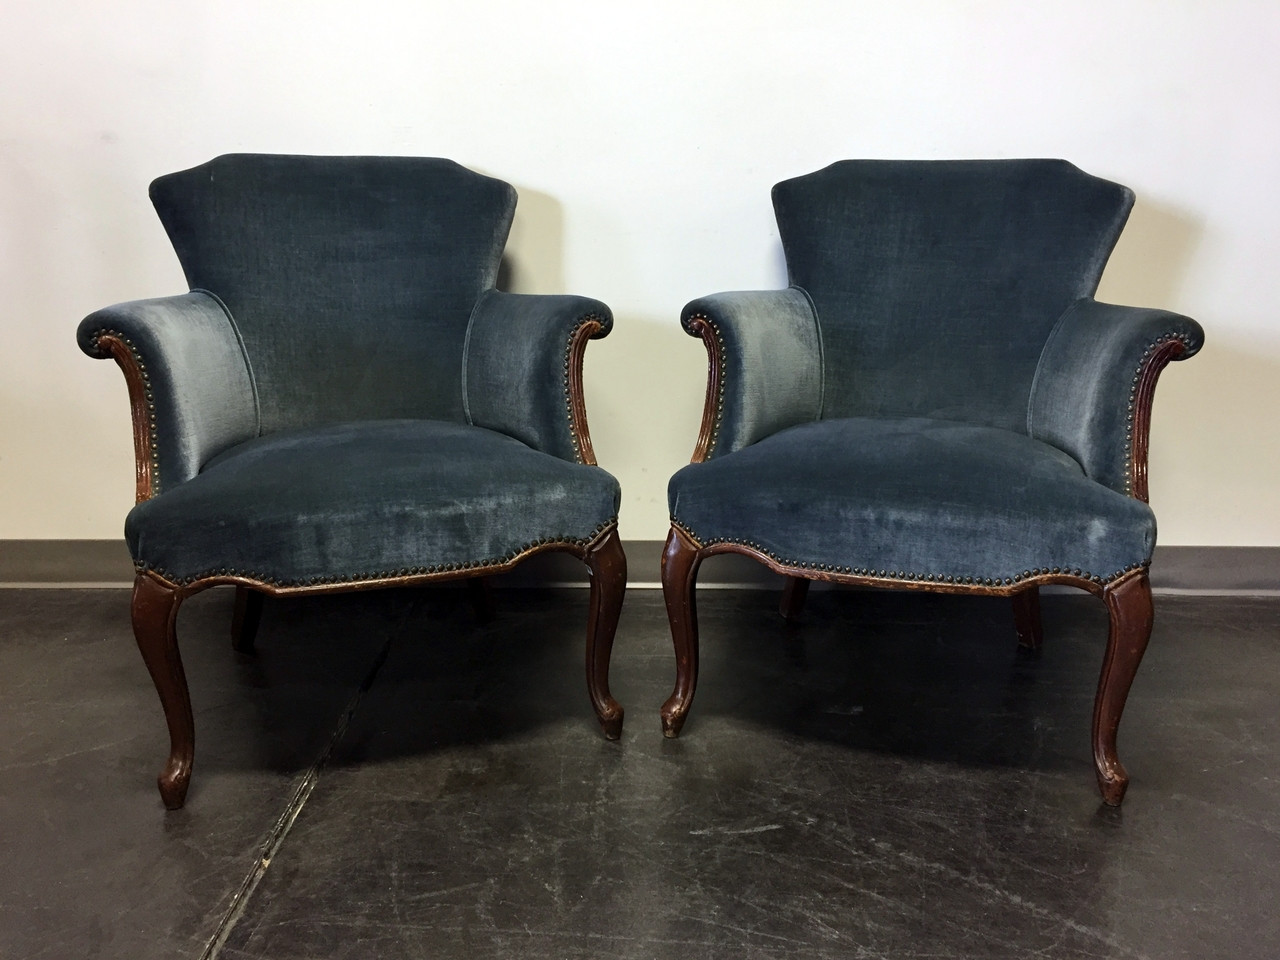 sold out vintage french style club chairs with blue upholstery u0026 nailhead trim pair